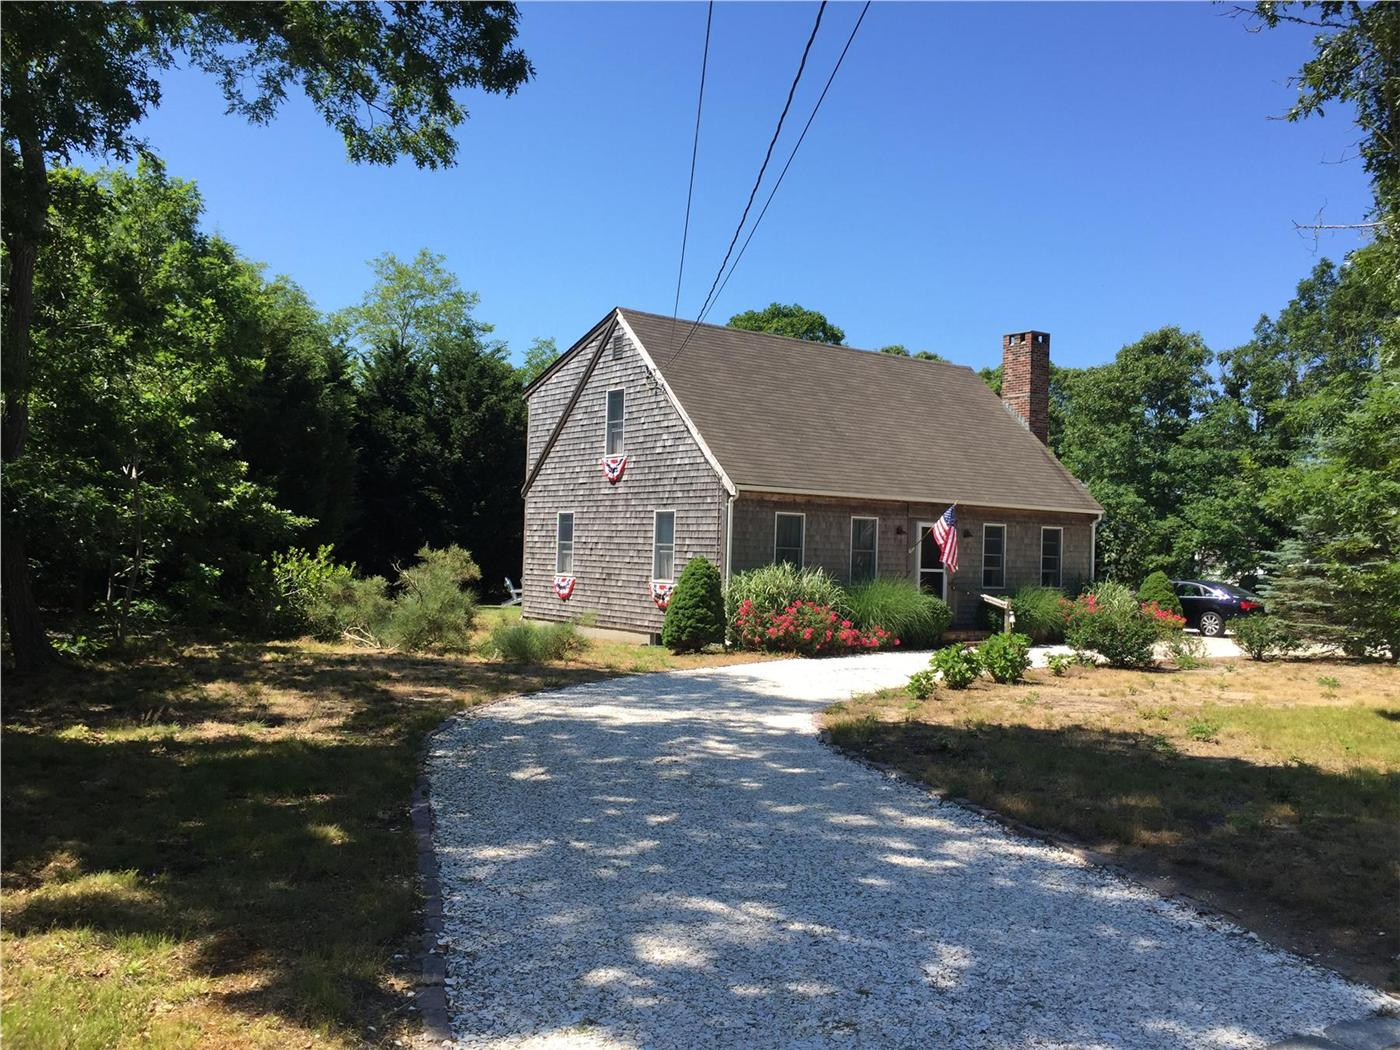 Eastham vacation rental home in cape cod ma 02642 id 26935 for Cabin rentals in cape cod ma